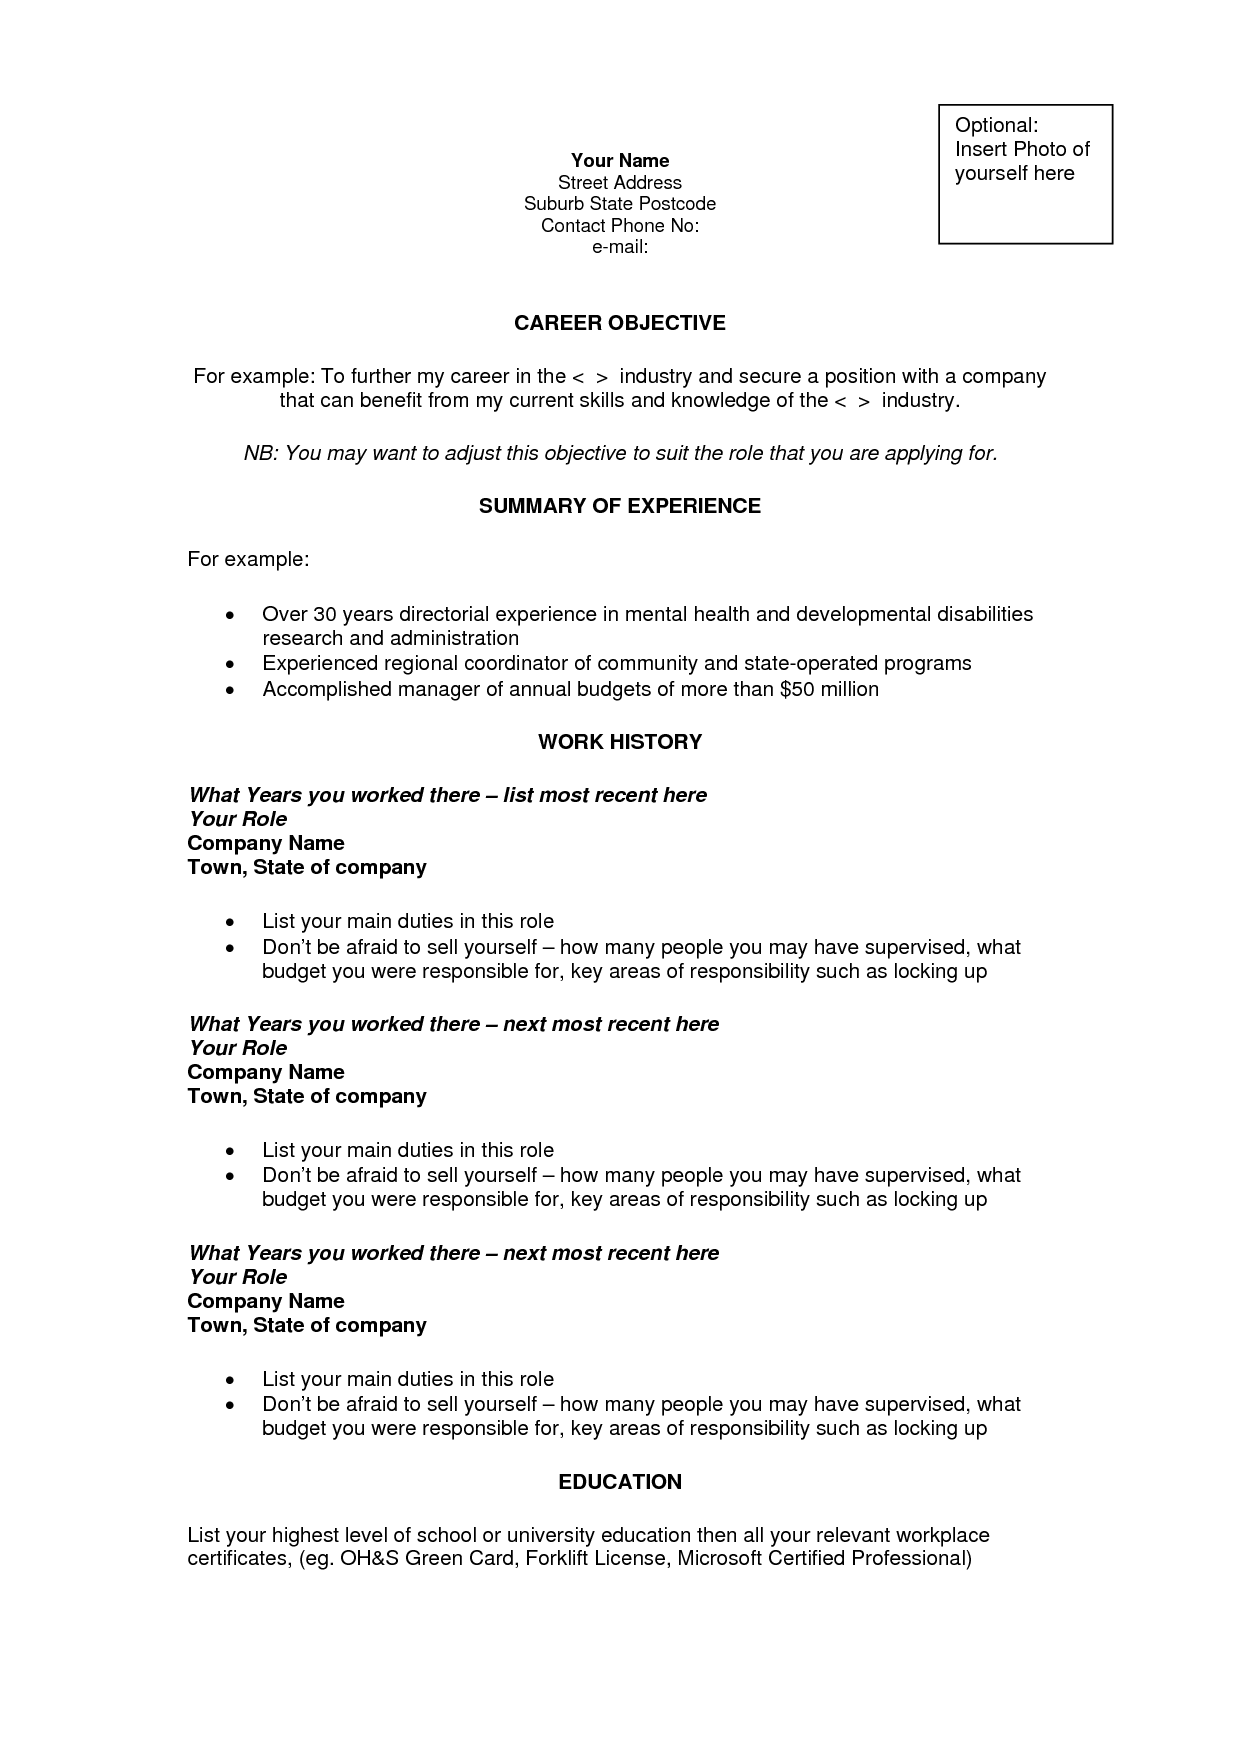 General Objective Statement Resume 12 General Career Objective Resume Samplebusinessresume